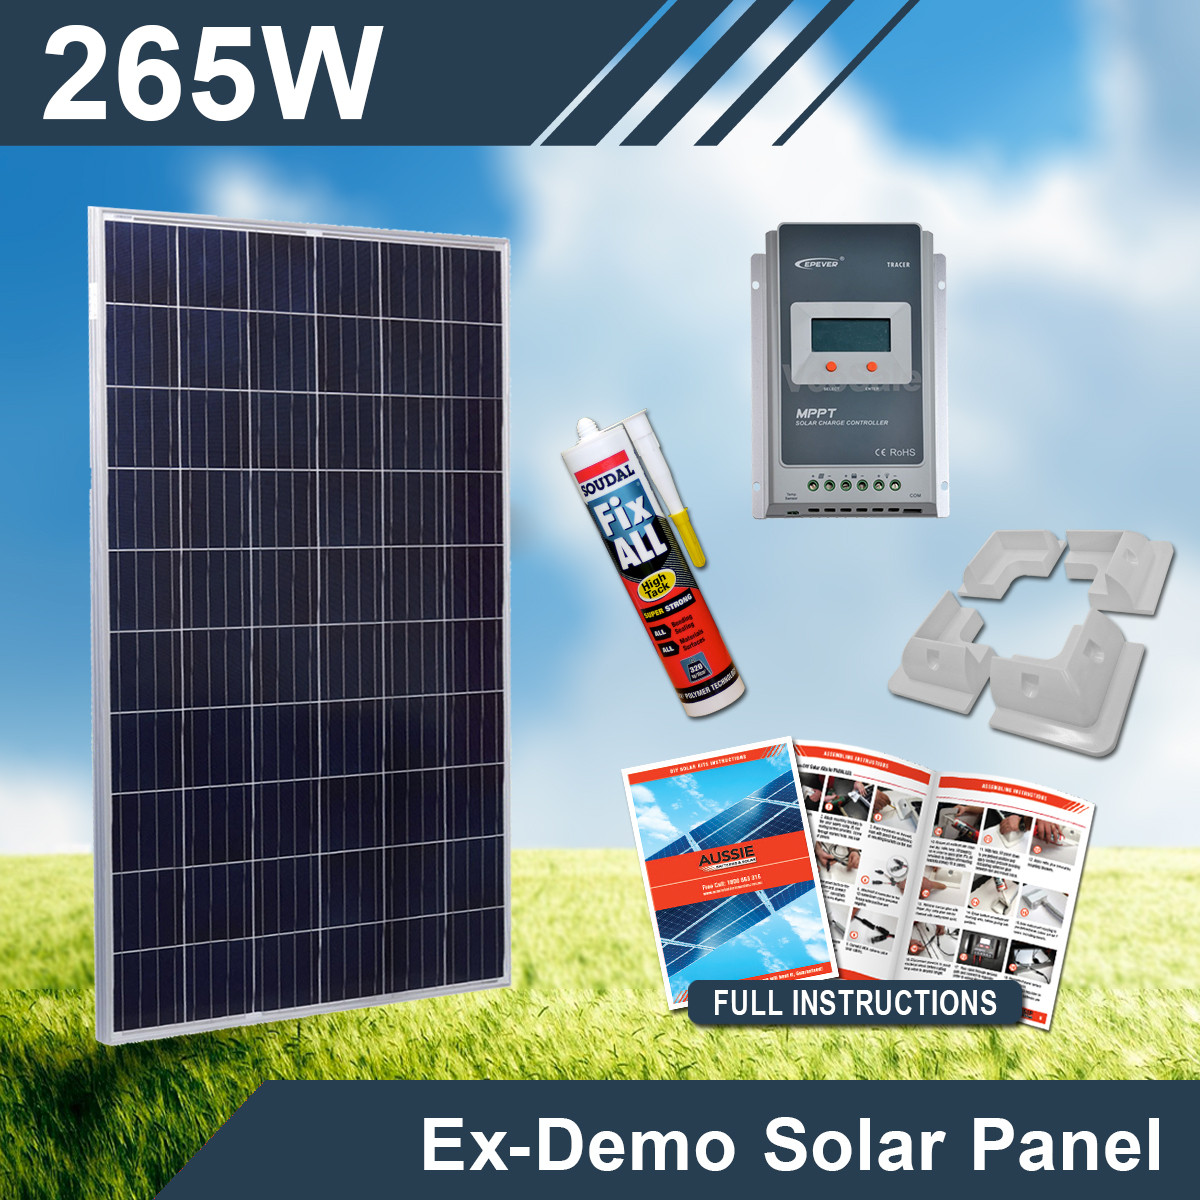 Best ideas about DIY Home Solar Kits . Save or Pin 265W 12V Ex Demo plete DIY Solar Kit Now.